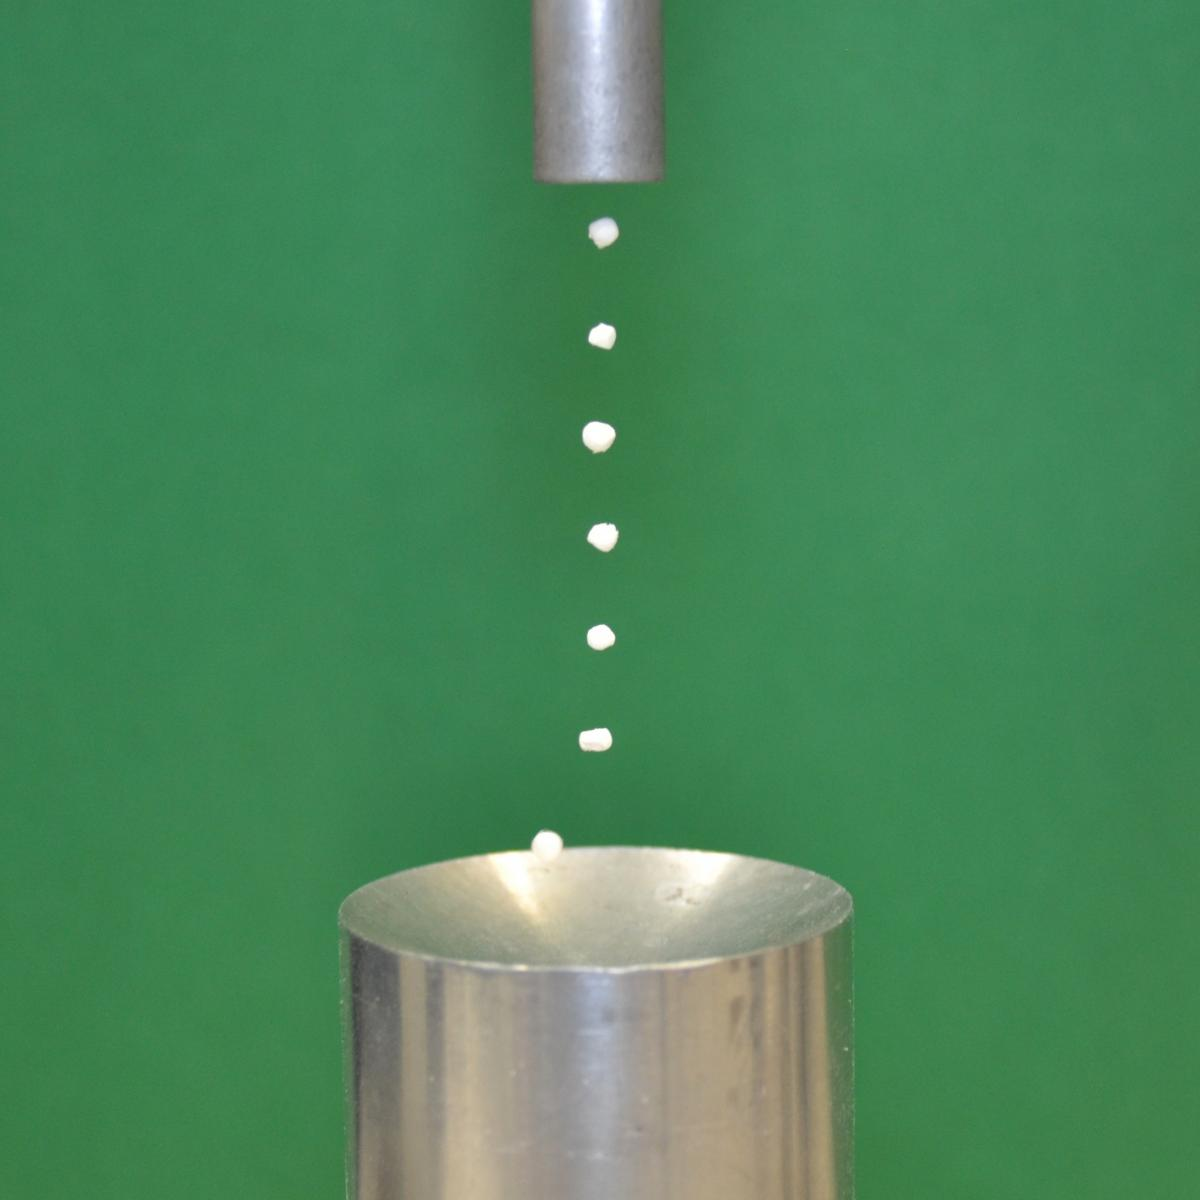 acoustic levitation made simple